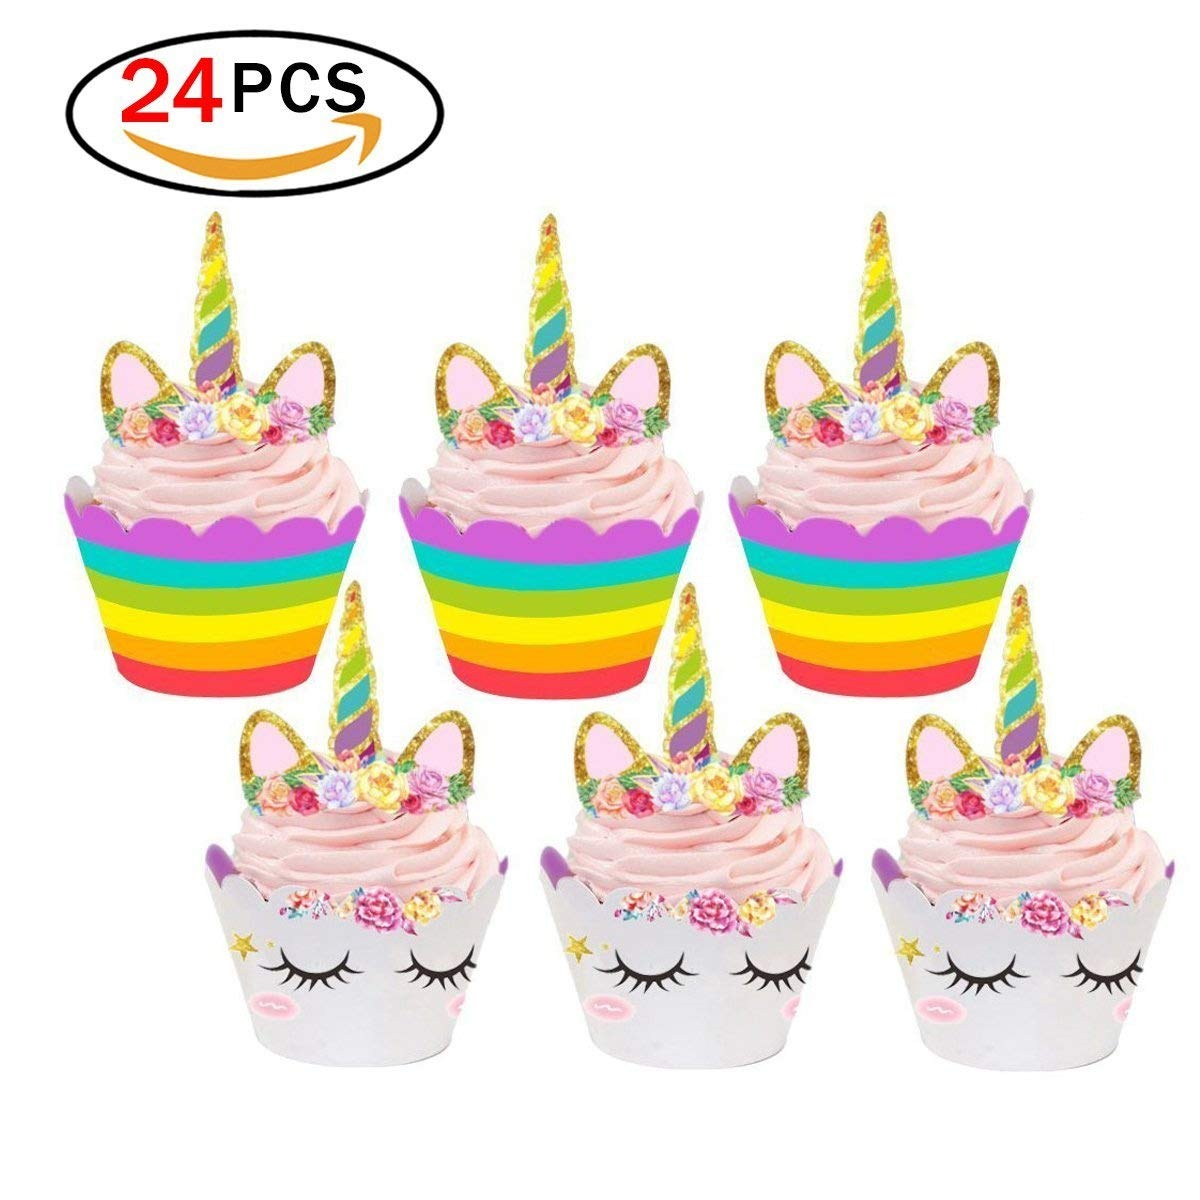 Rocita Set of 24 Unicorn Cupcake Toppers and Wrappers Double Sided Kids Party Cake Decorations